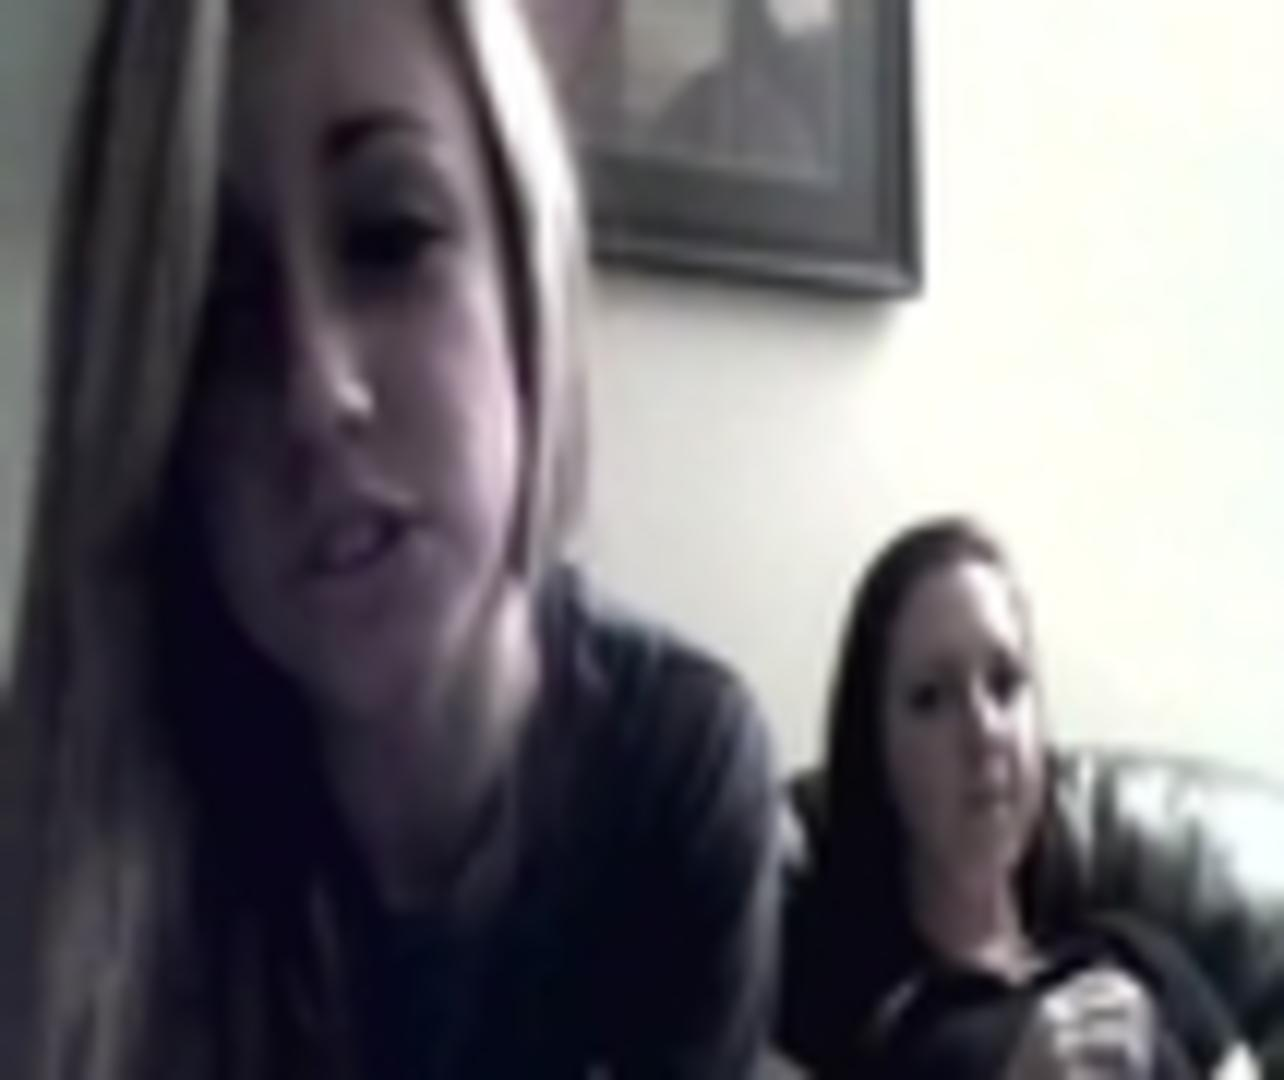 two girls web cam head smash | jukin media